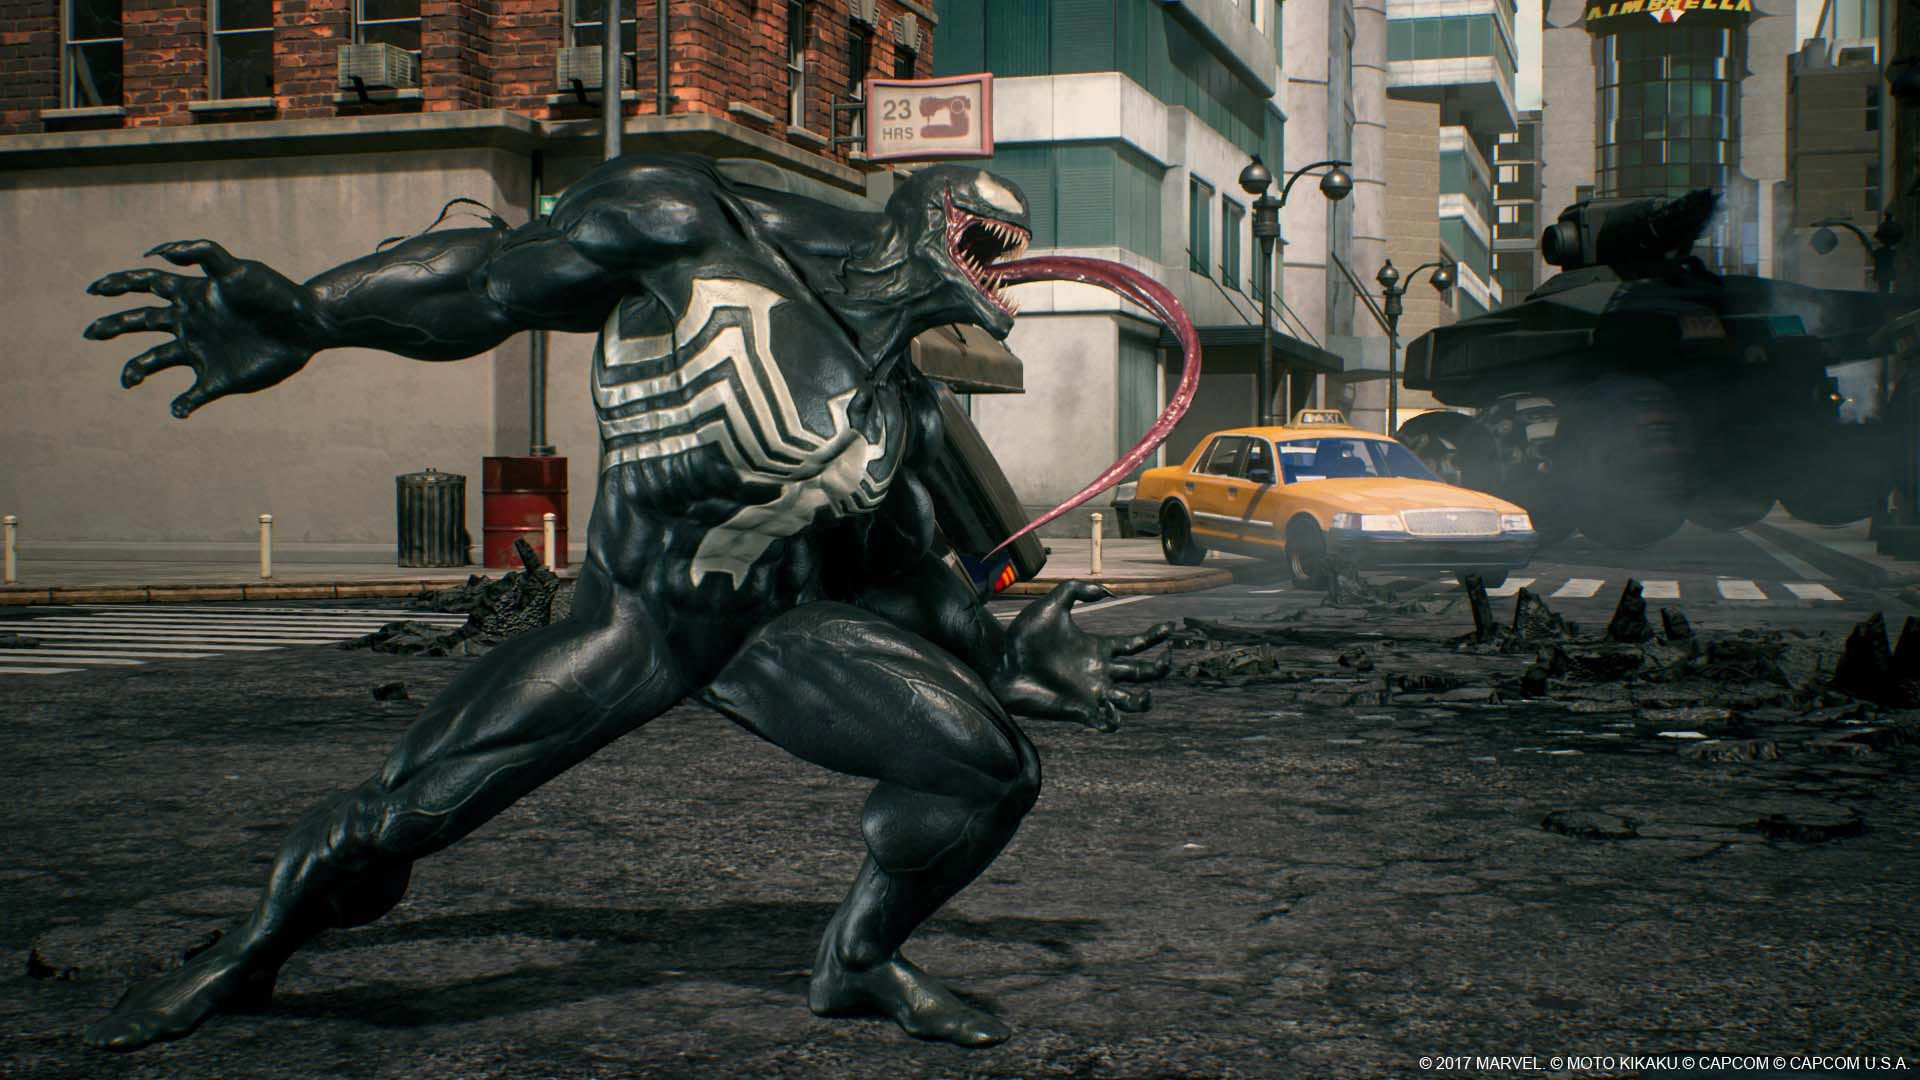 Venom, Black Widow, and Winter Solider in Marvel vs. Capcom: Infinite screenshots 13 out of 13 image gallery